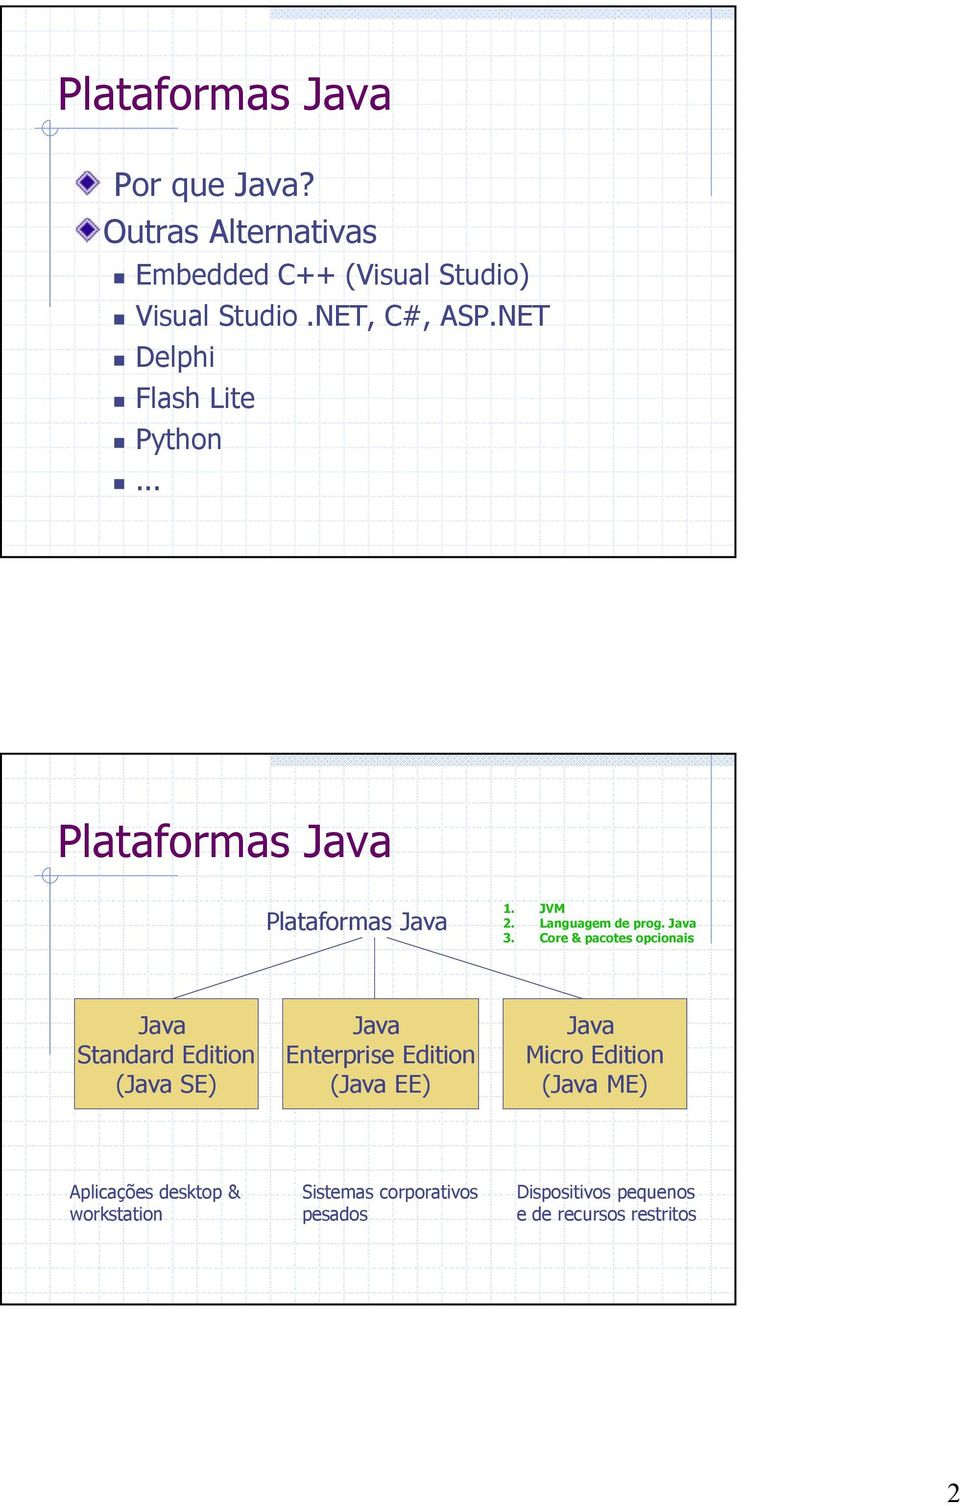 Core & pacotes opcionais Java Standard Edition (Java SE) Java Enterprise Edition (Java EE) Java Micro Edition